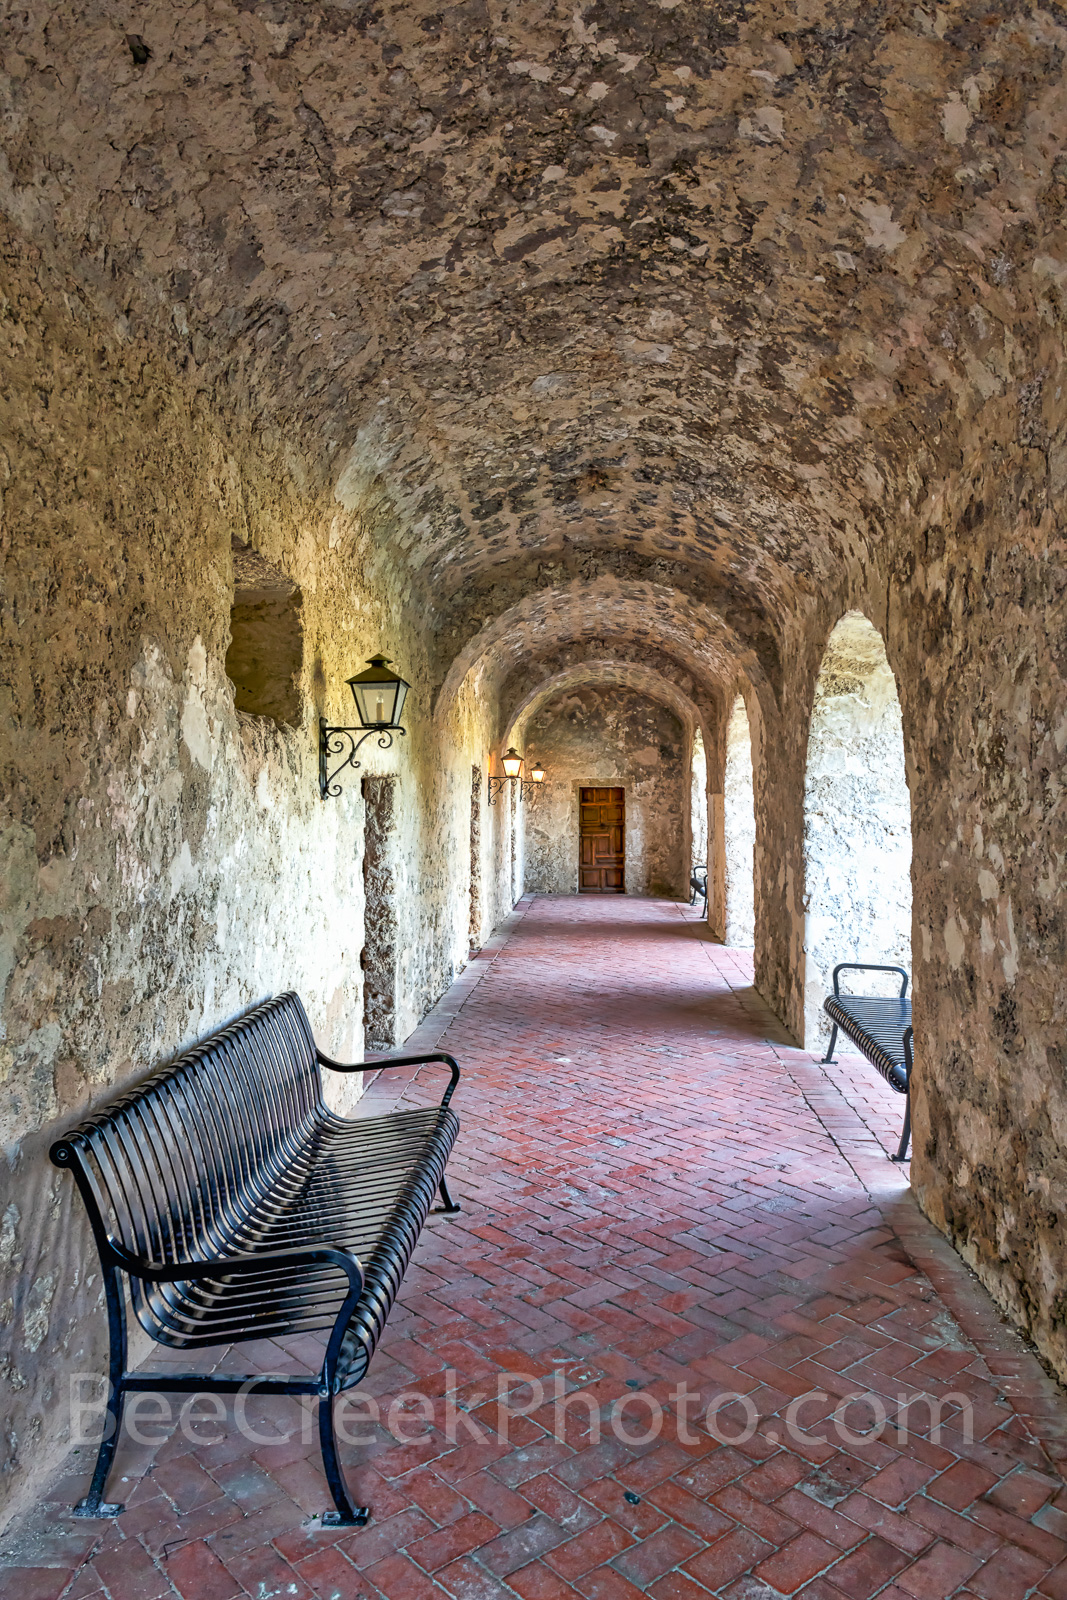 Mission Concepcion, breezeway, hall way, rock, brick, architecture, church, San Antonio Missions National Historical Park, , photo